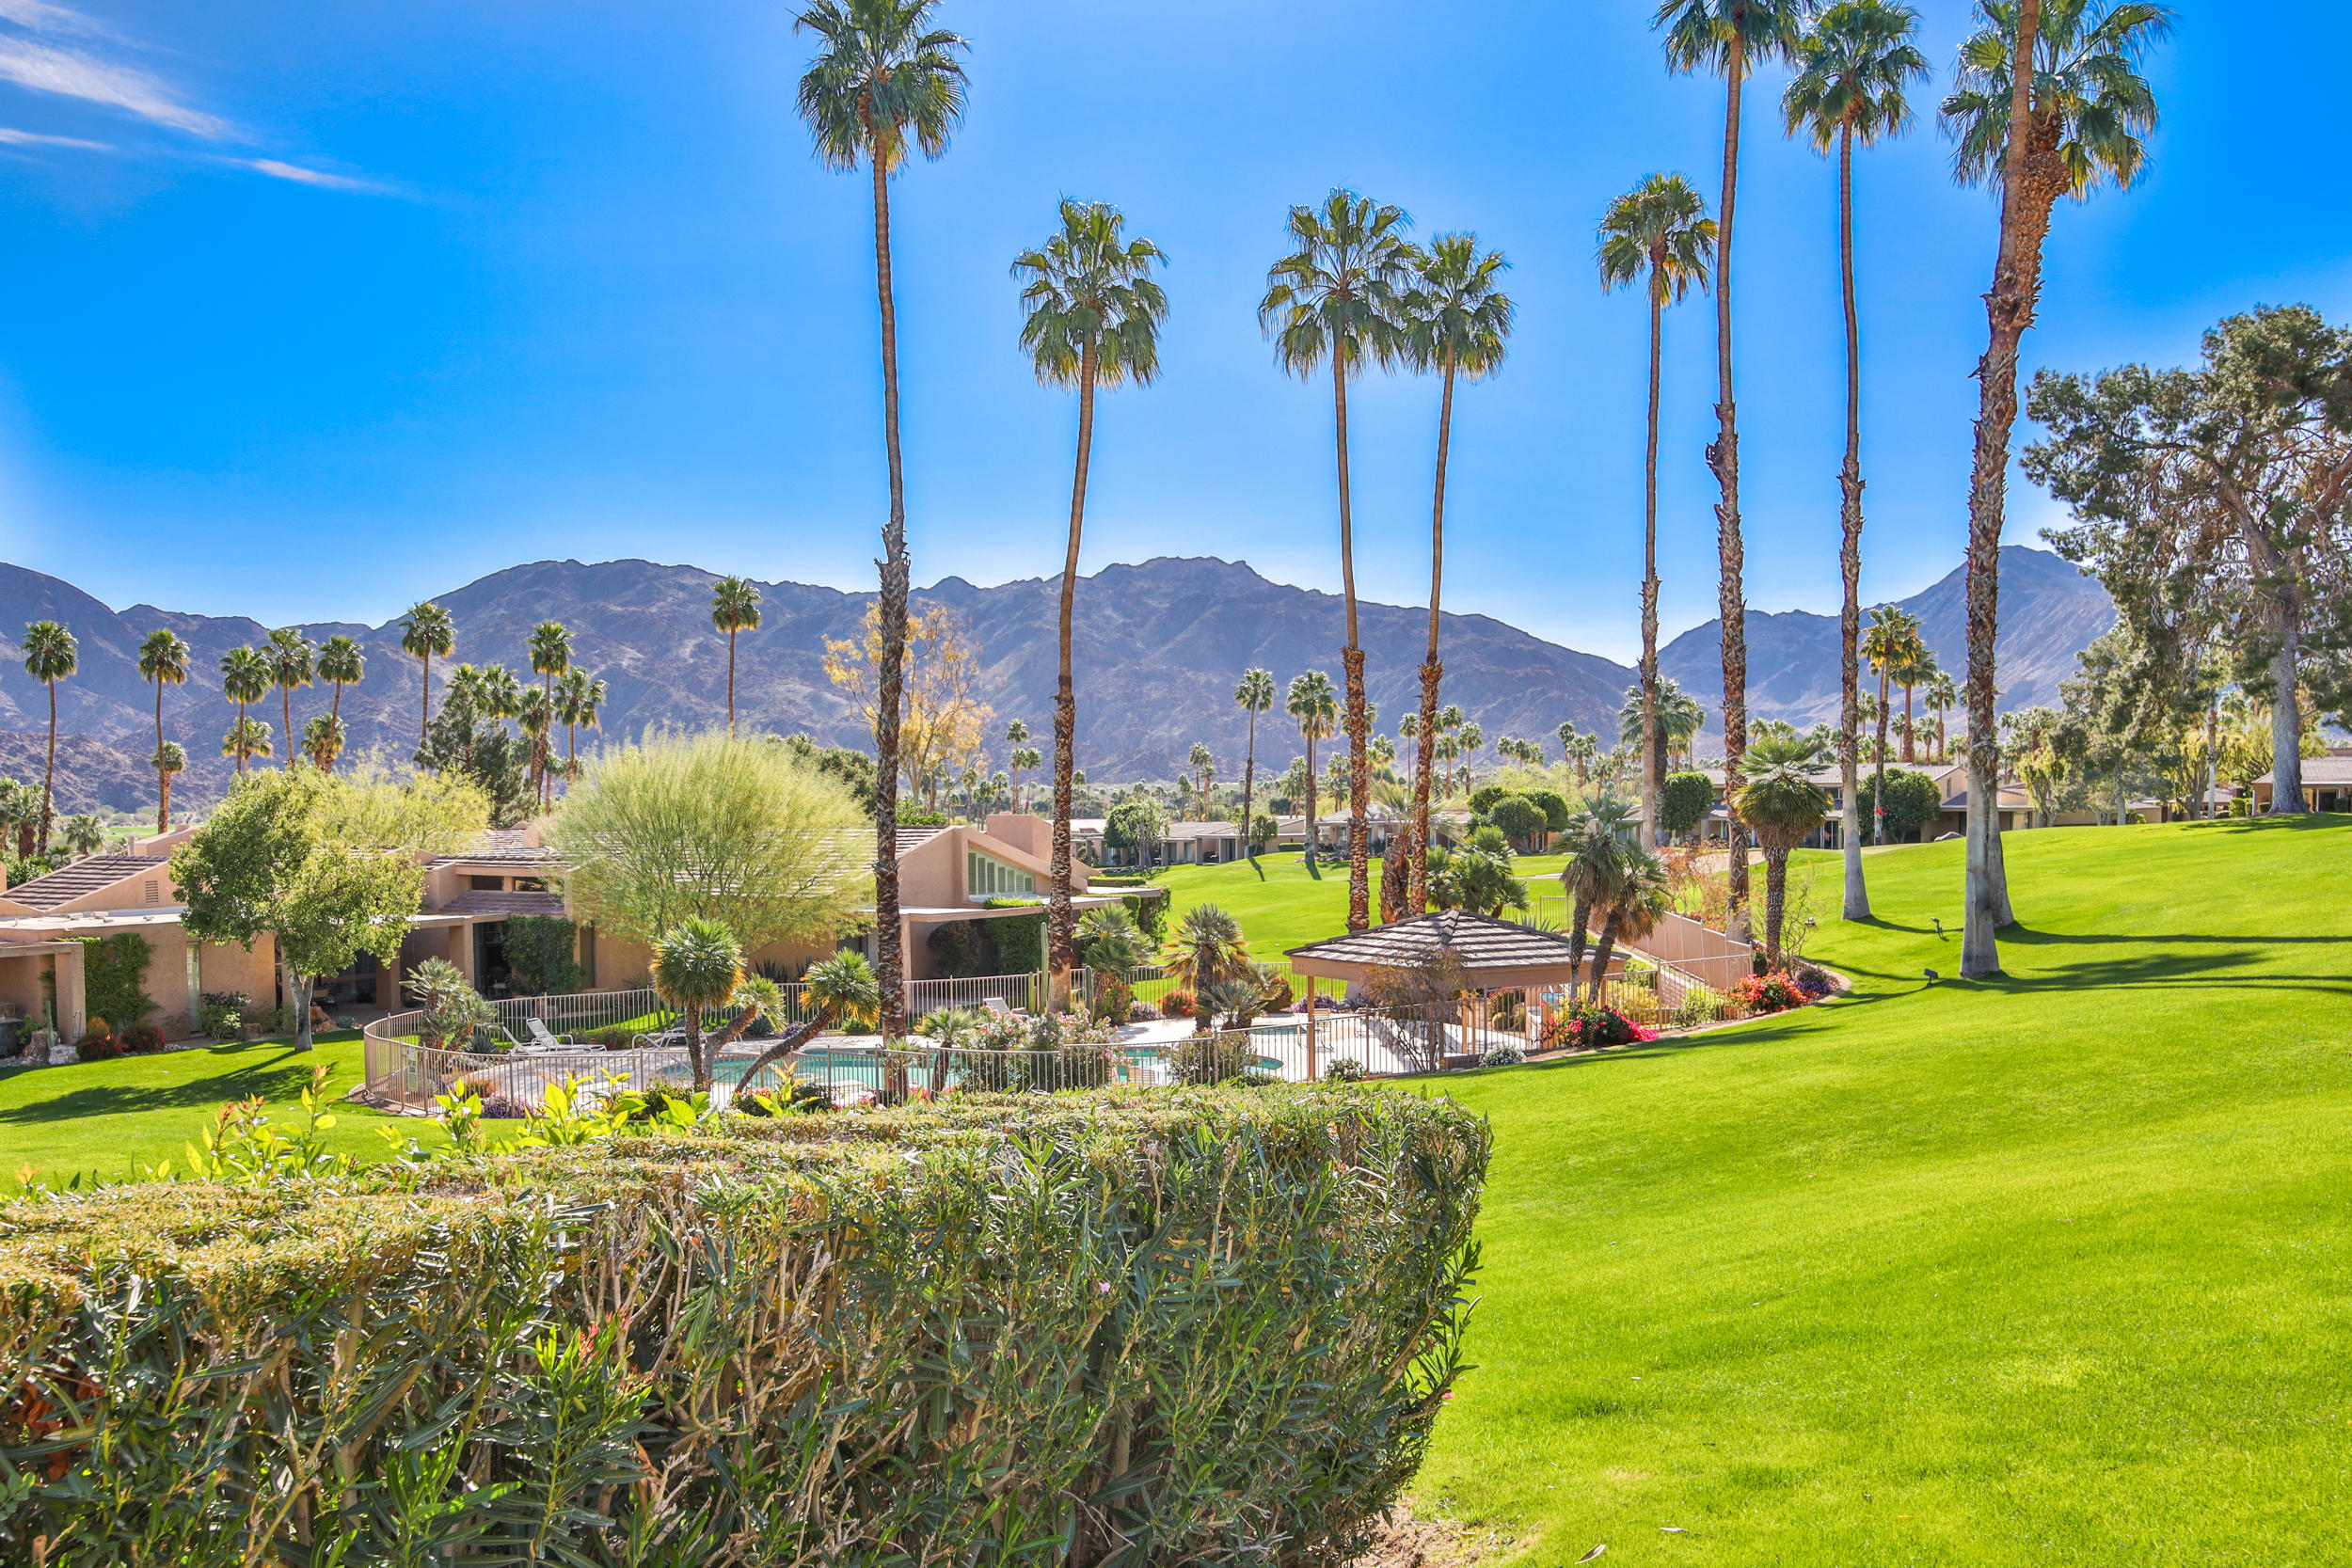 73395 Oriole Court, Palm Desert, California 92260, 3 Bedrooms Bedrooms, ,3 BathroomsBathrooms,Residential,For Sale,73395 Oriole Court,219040139